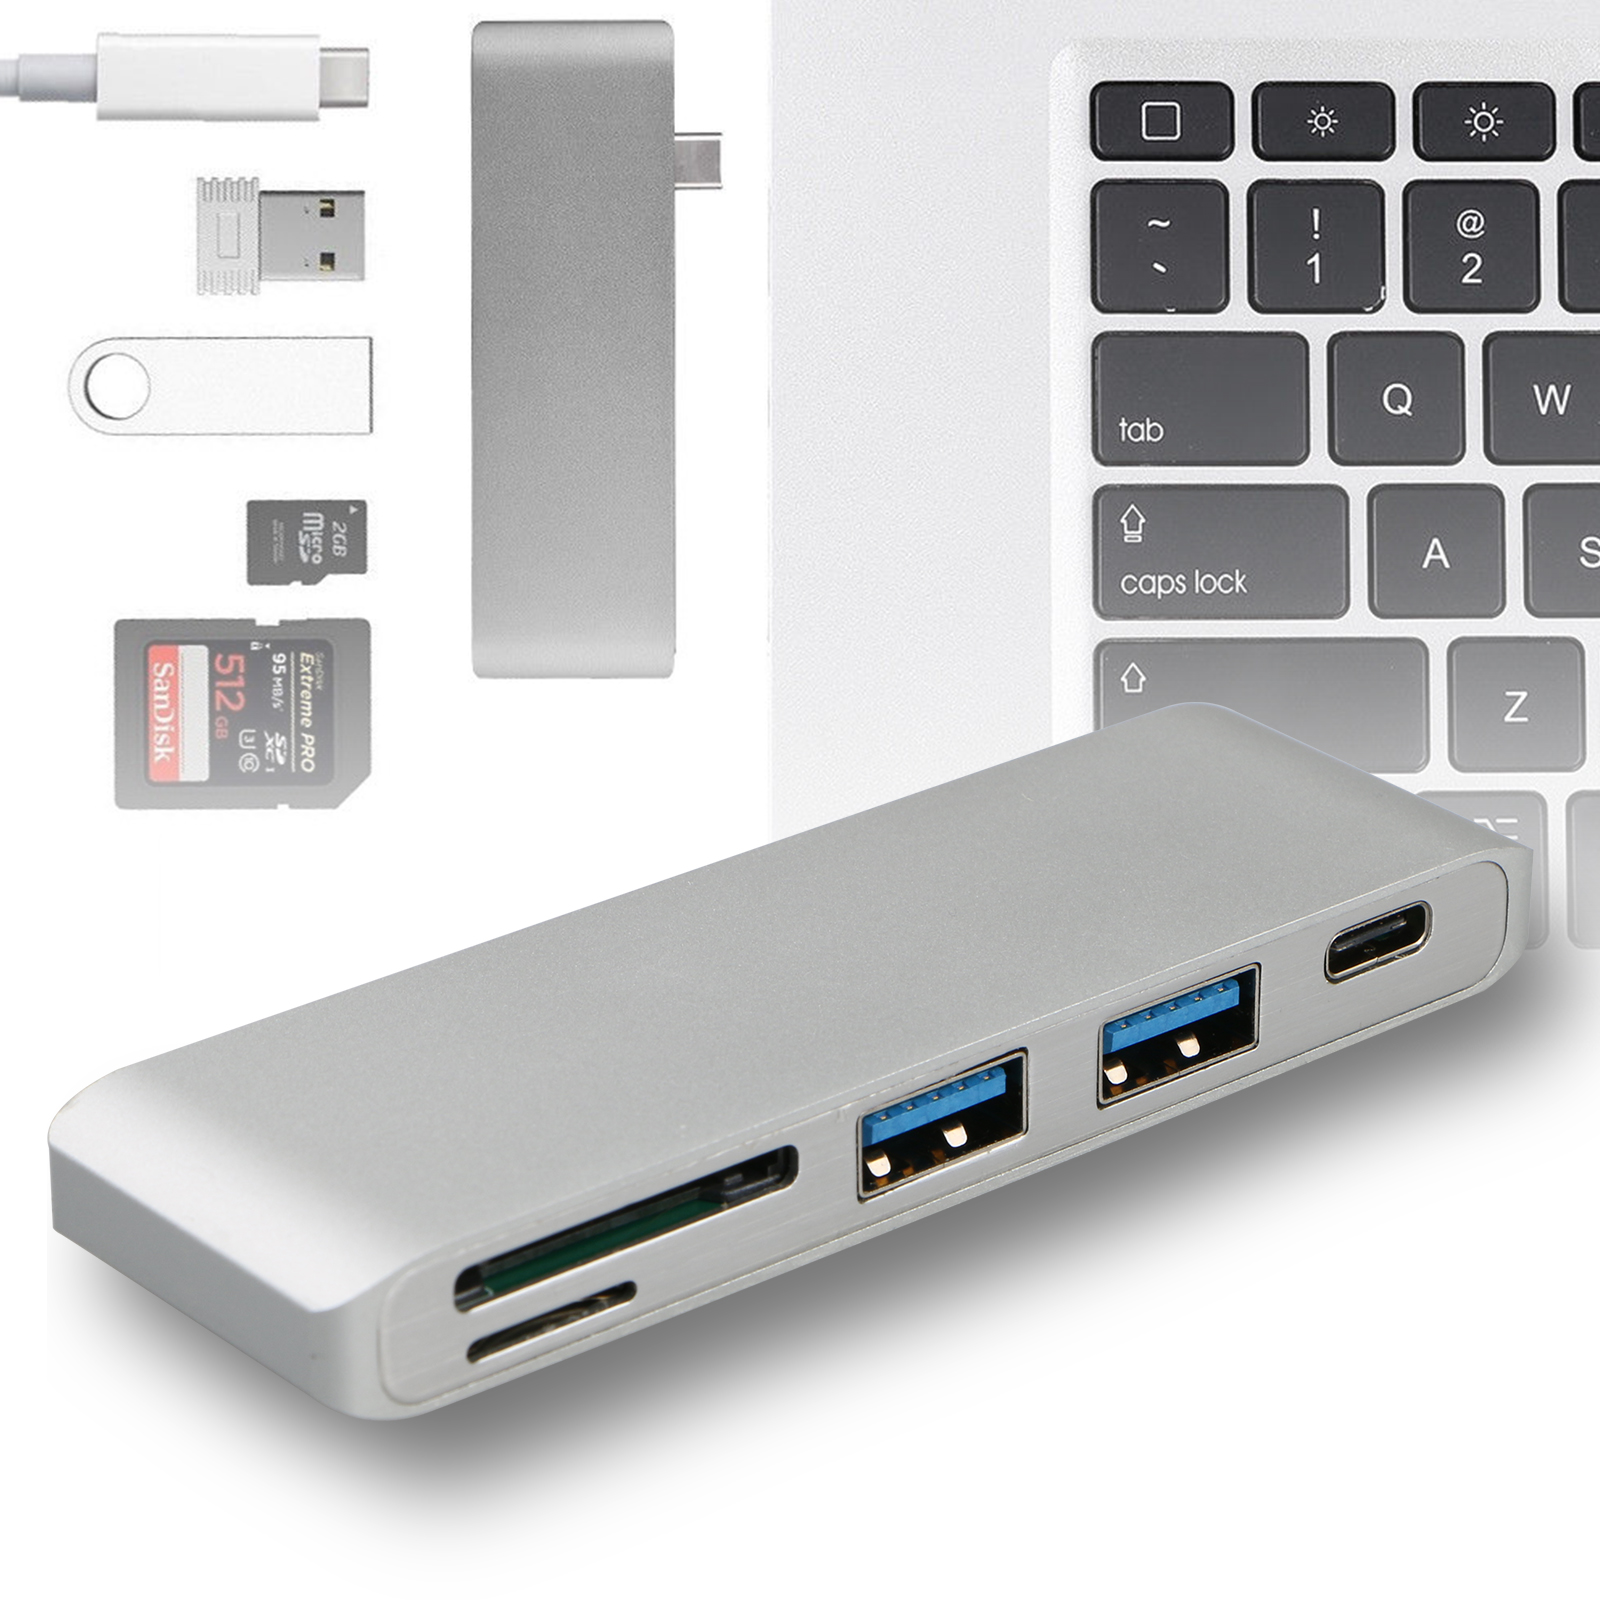 TSV 5in1 USB-C 3.0 Type-C HUB Adapter Data Sync Card Reader Charging, Aluminum Multi-Port Adapter with USB-C Charging Port For Macbook Pro